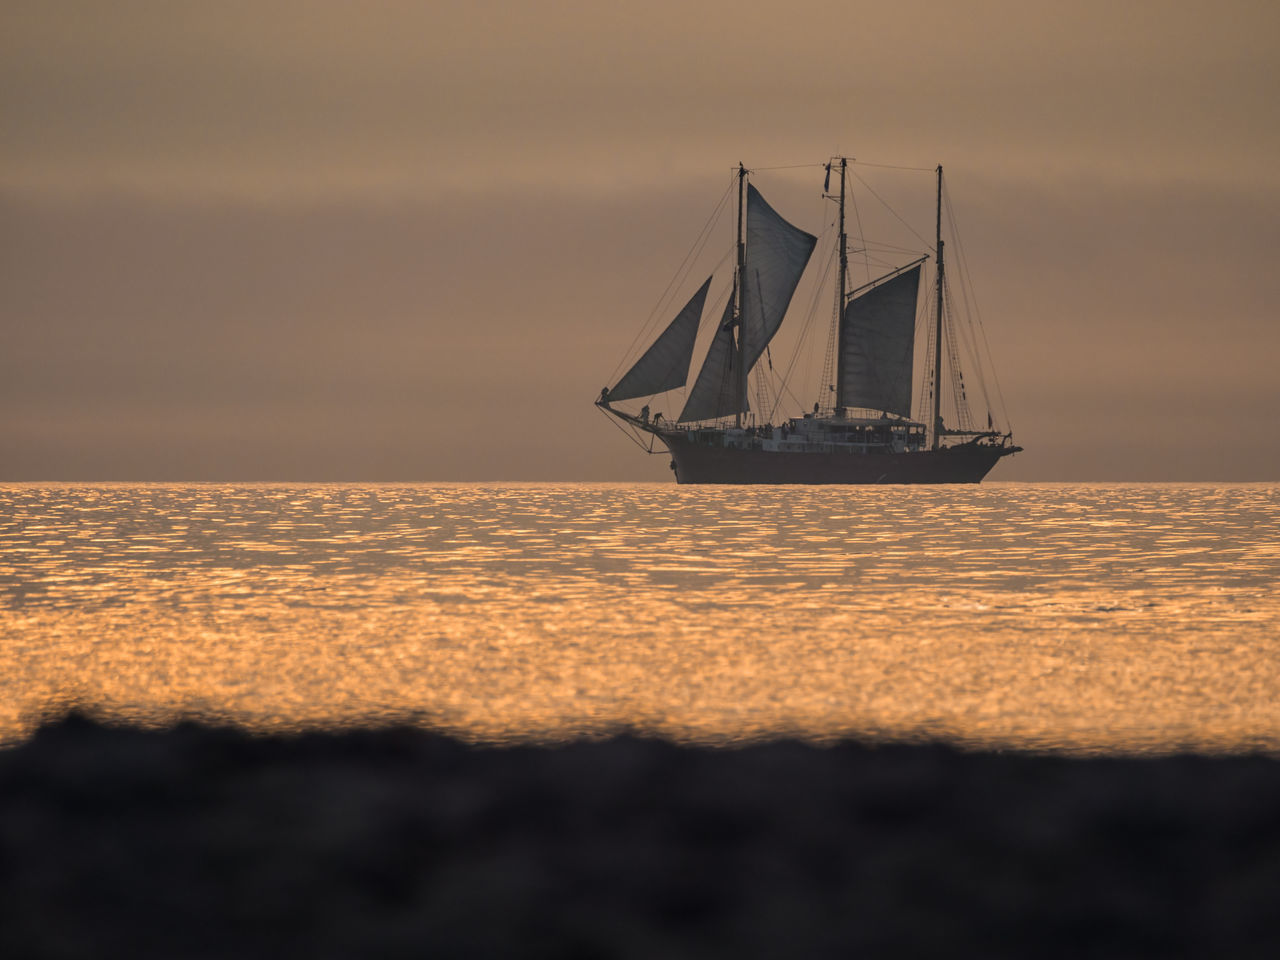 Windjammer on the Baltic Sea in Warnemuende, Germany. Baltic Sea Beach Day Horizon Horizon Over Water Nature Nautical Vessel No People Old-fashioned Outdoors Regatta Roses Sailboat Sailing Sailing Ship Sea Sky Sunset Tall Ship Warnemünde Water Wave Windjammer Yacht Yachting